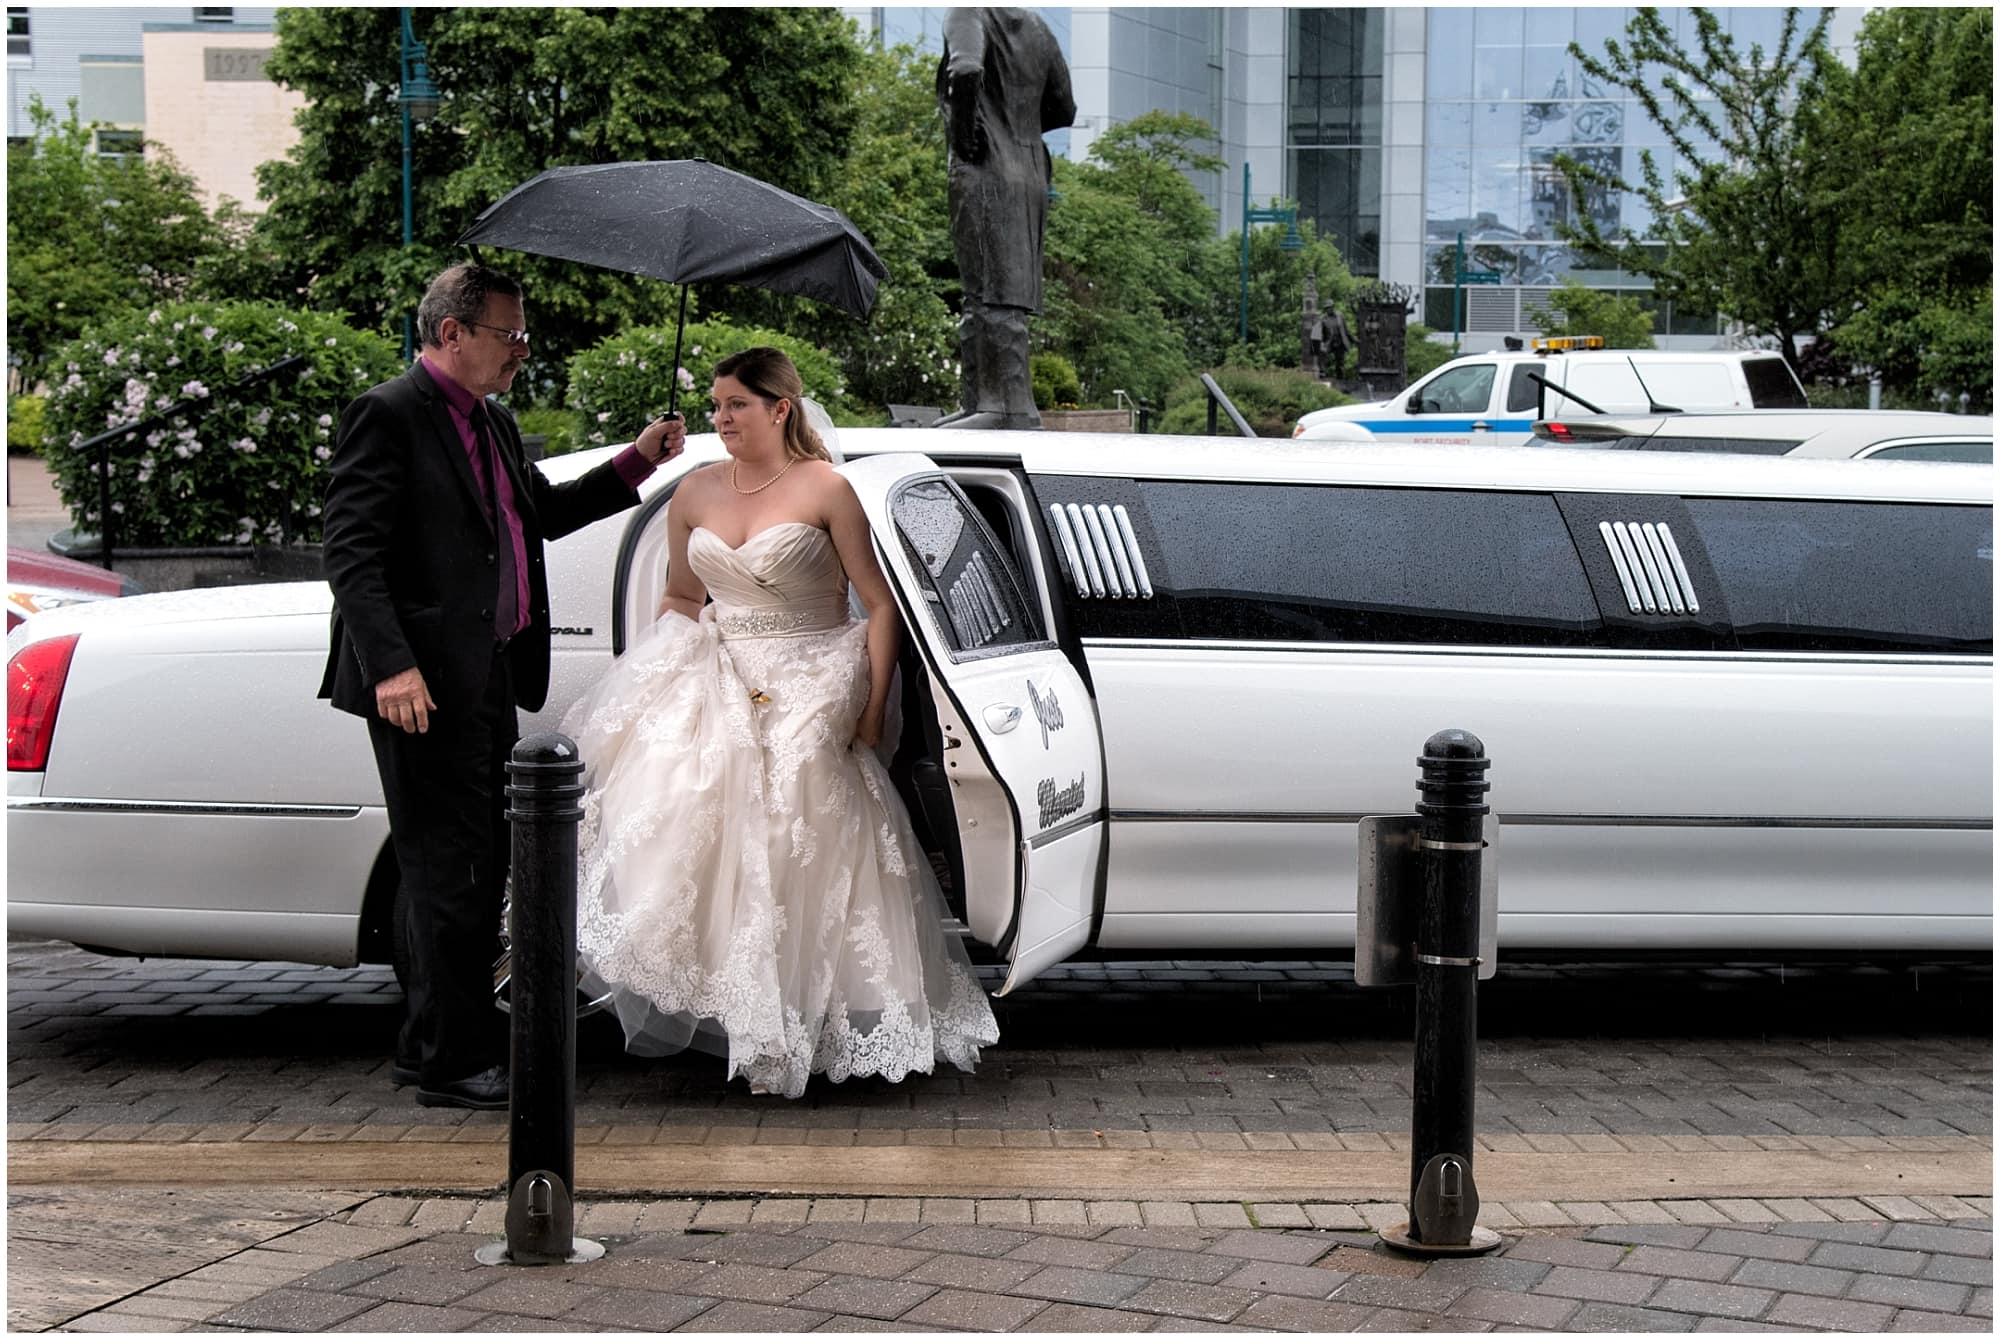 The bride getting out of a limo for her wedding photos at the farmer's market in Halifax.